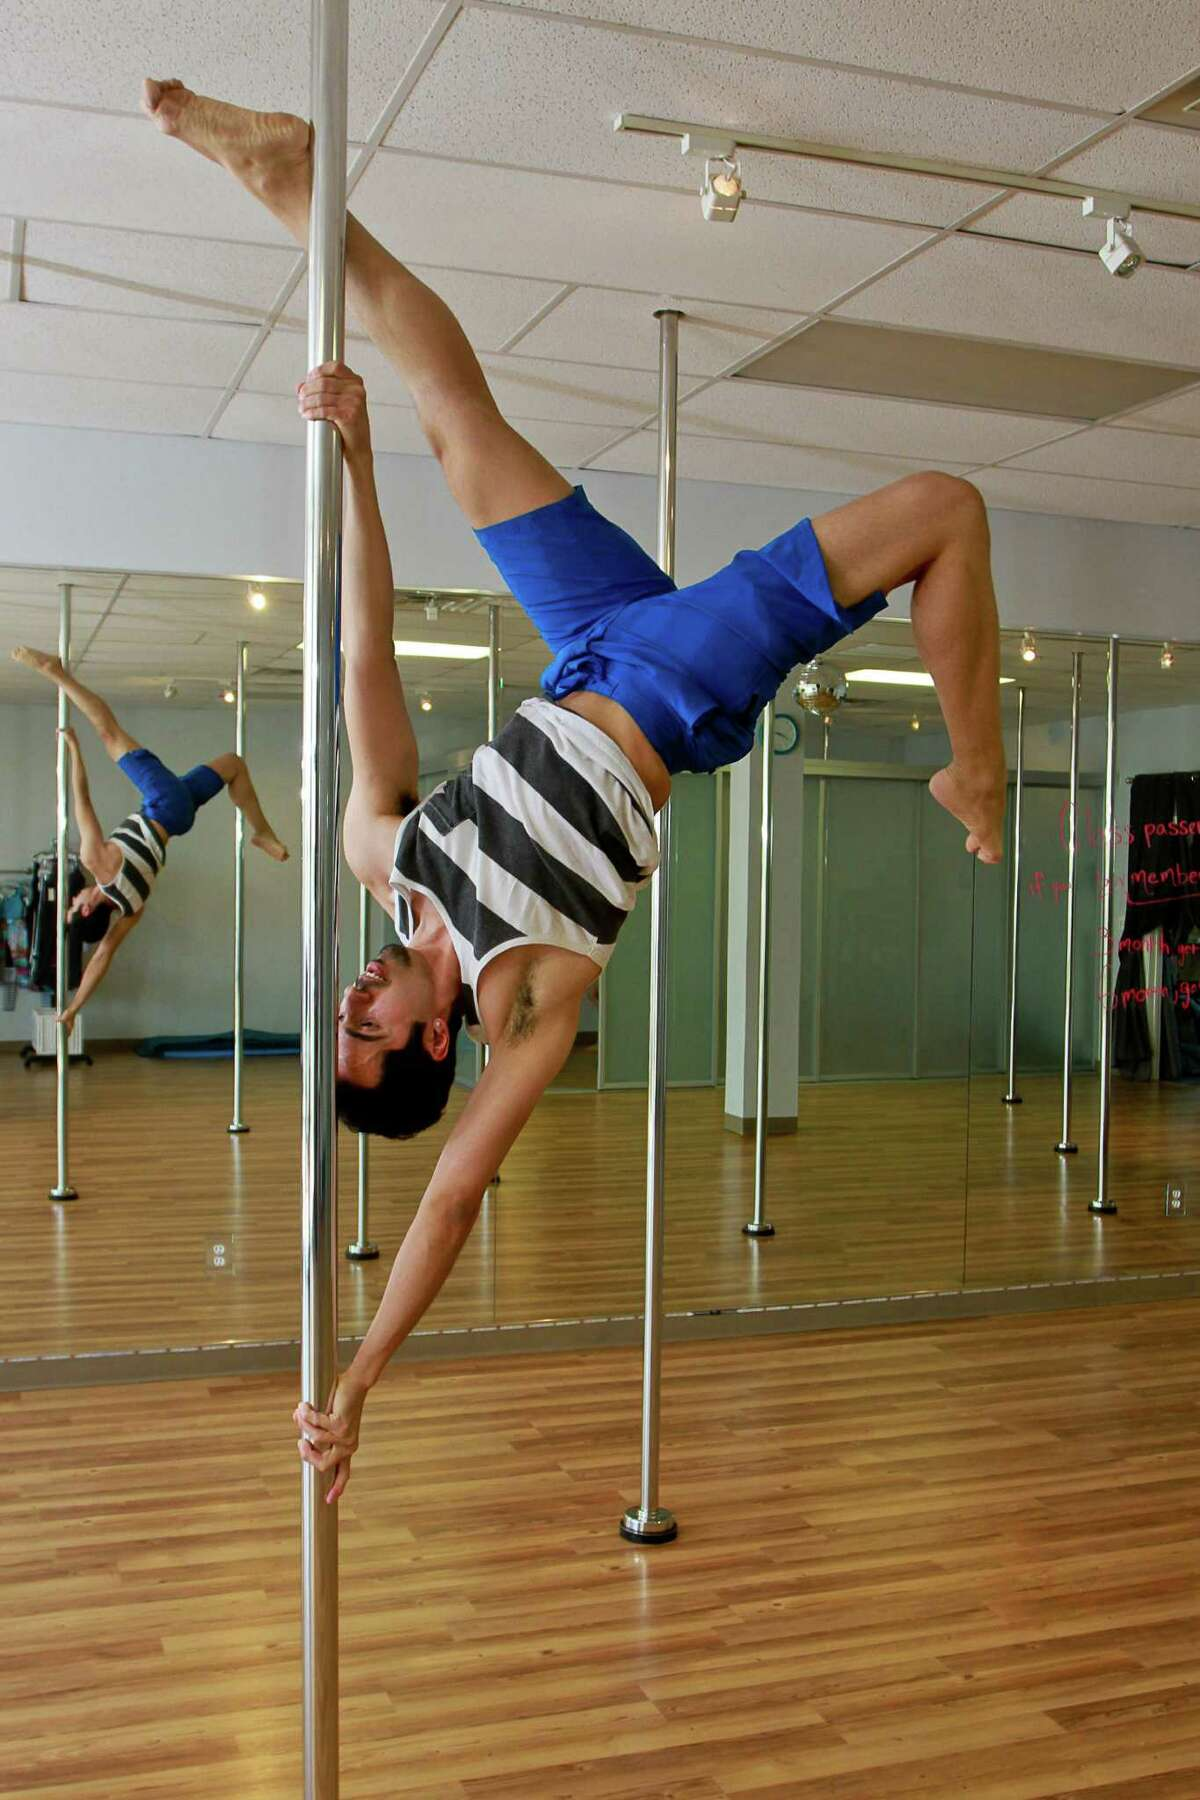 Instructor Patrick Alvarez demonstrates an extended butterfly move during his pole-dancing class.